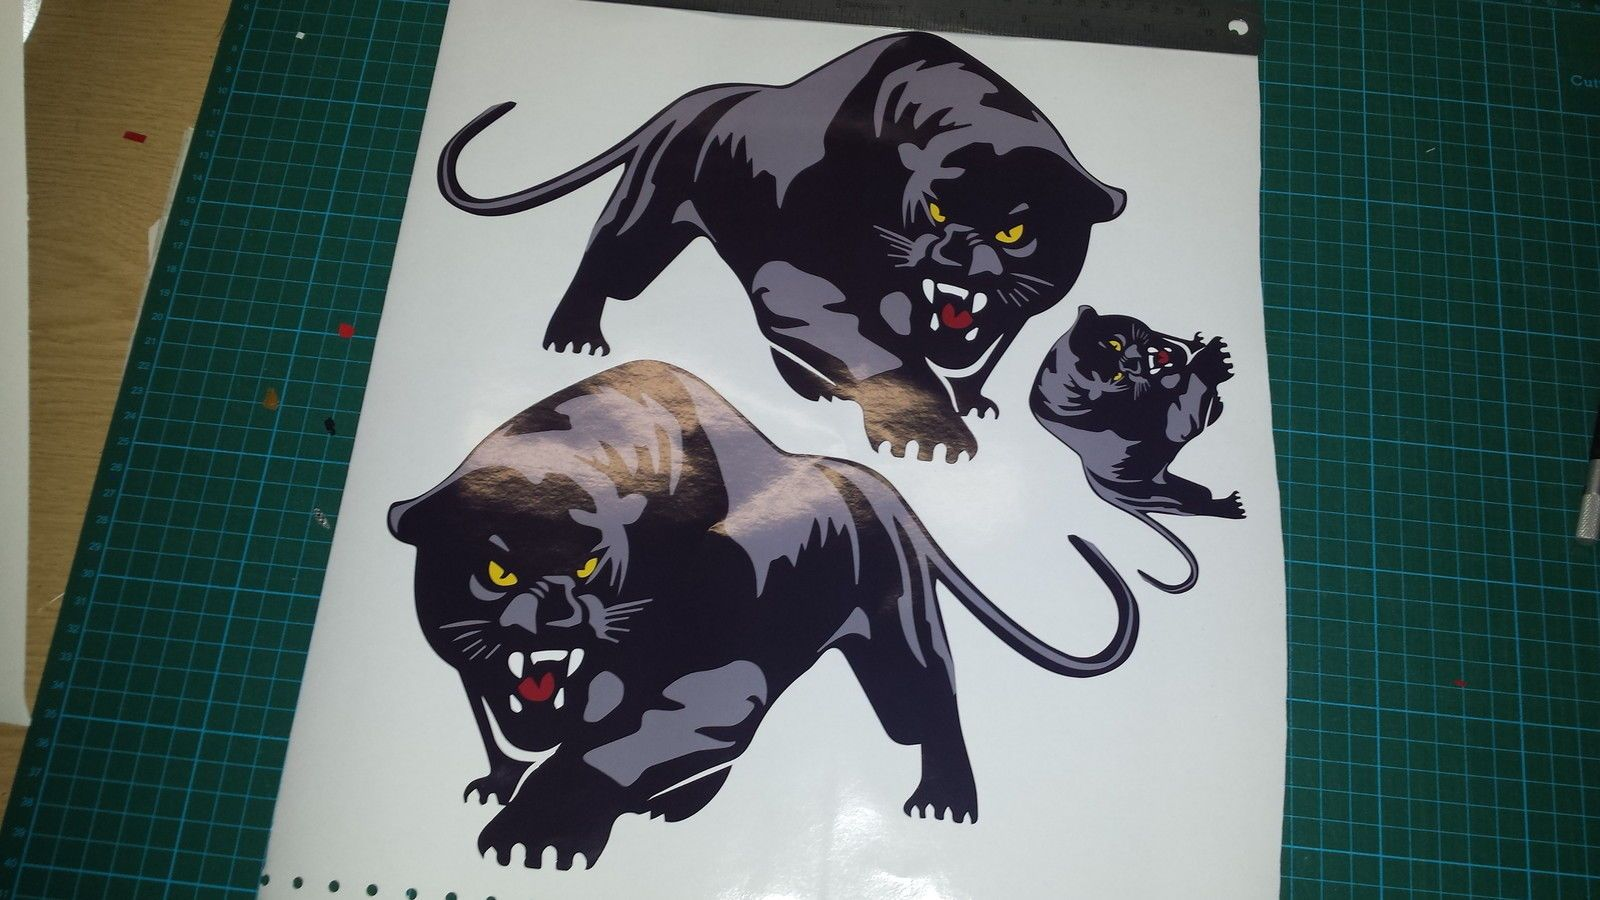 3x scomadi panther decals stickers 2 large 1 small custom printed